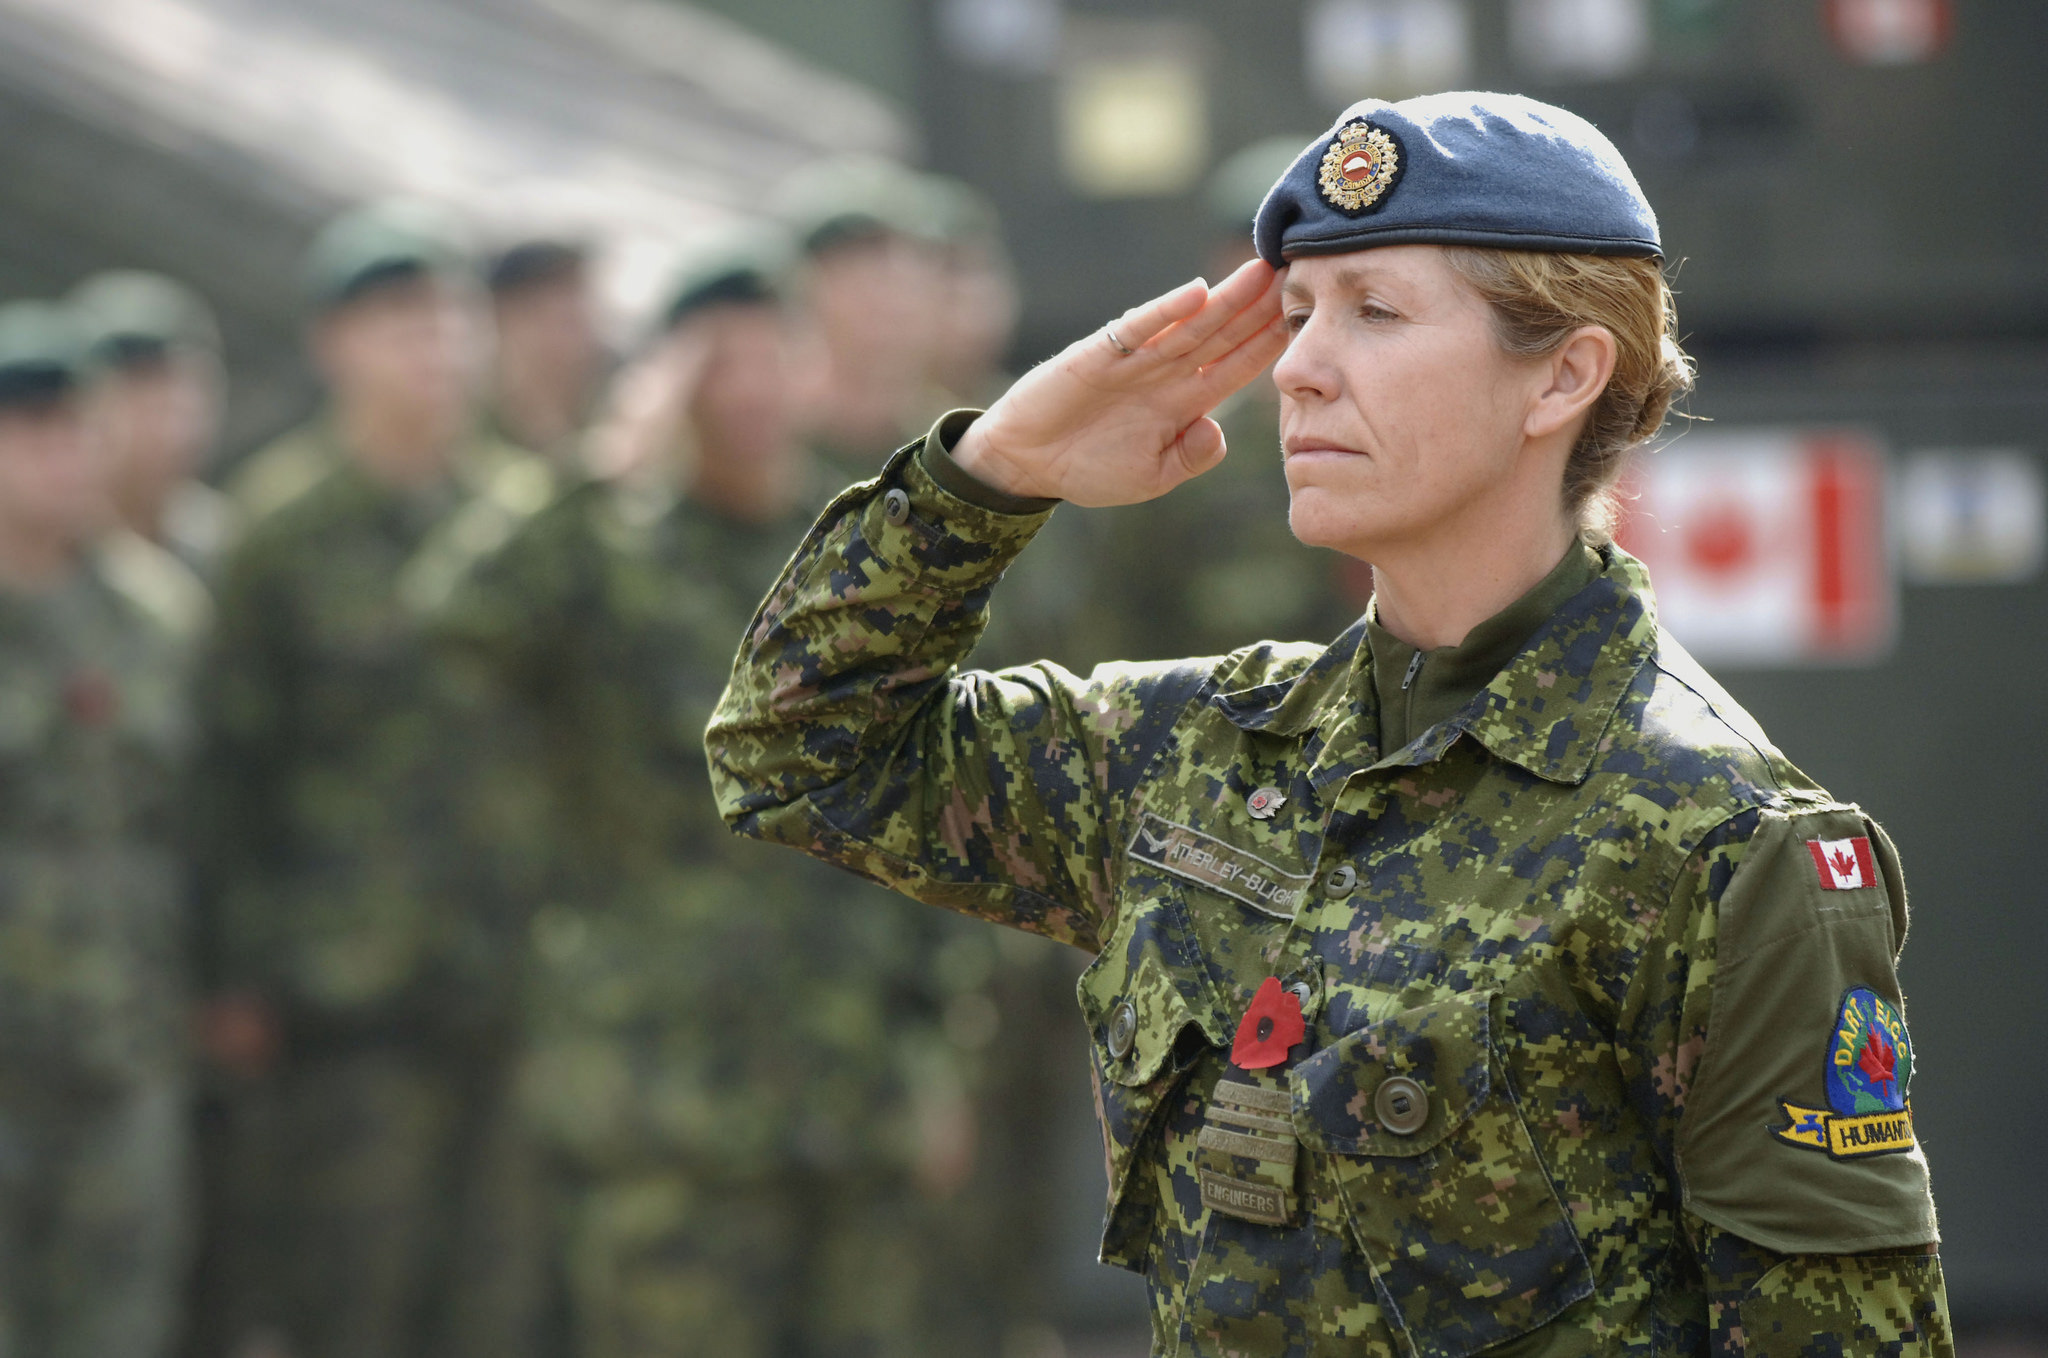 Major Julia Atherley-Blight, Deputy Commanding Officer of the Canadian Forces Disaster Assistance Response Team, salutes during a Remembrance Day ceremony in Pakistan (Sgt Frank Hudec/Canadian Forces)